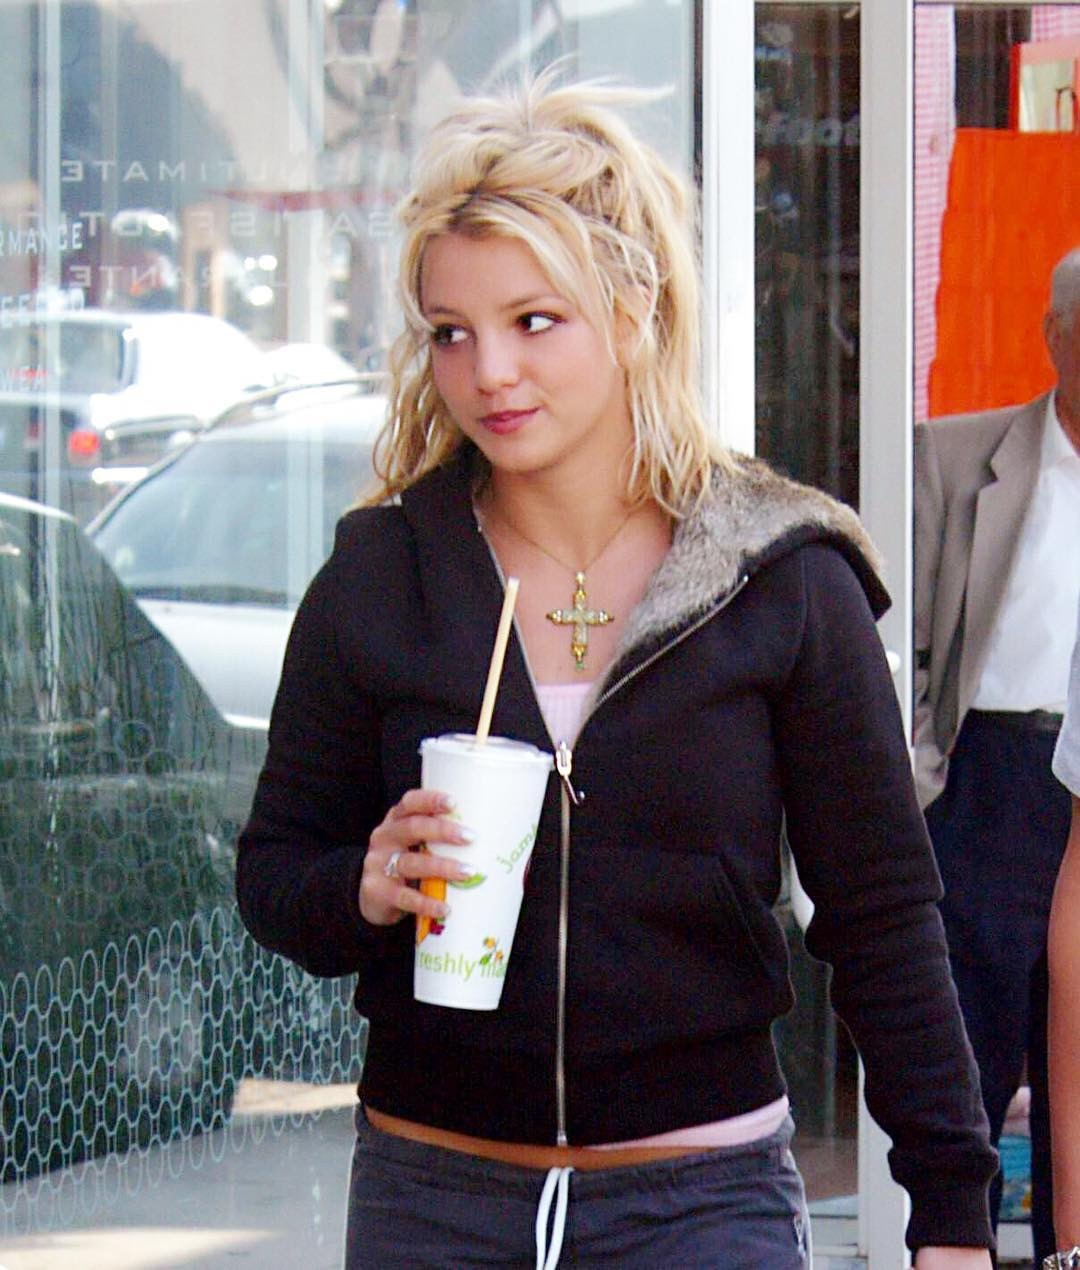 Brittany Spears Candid Photos photo 25